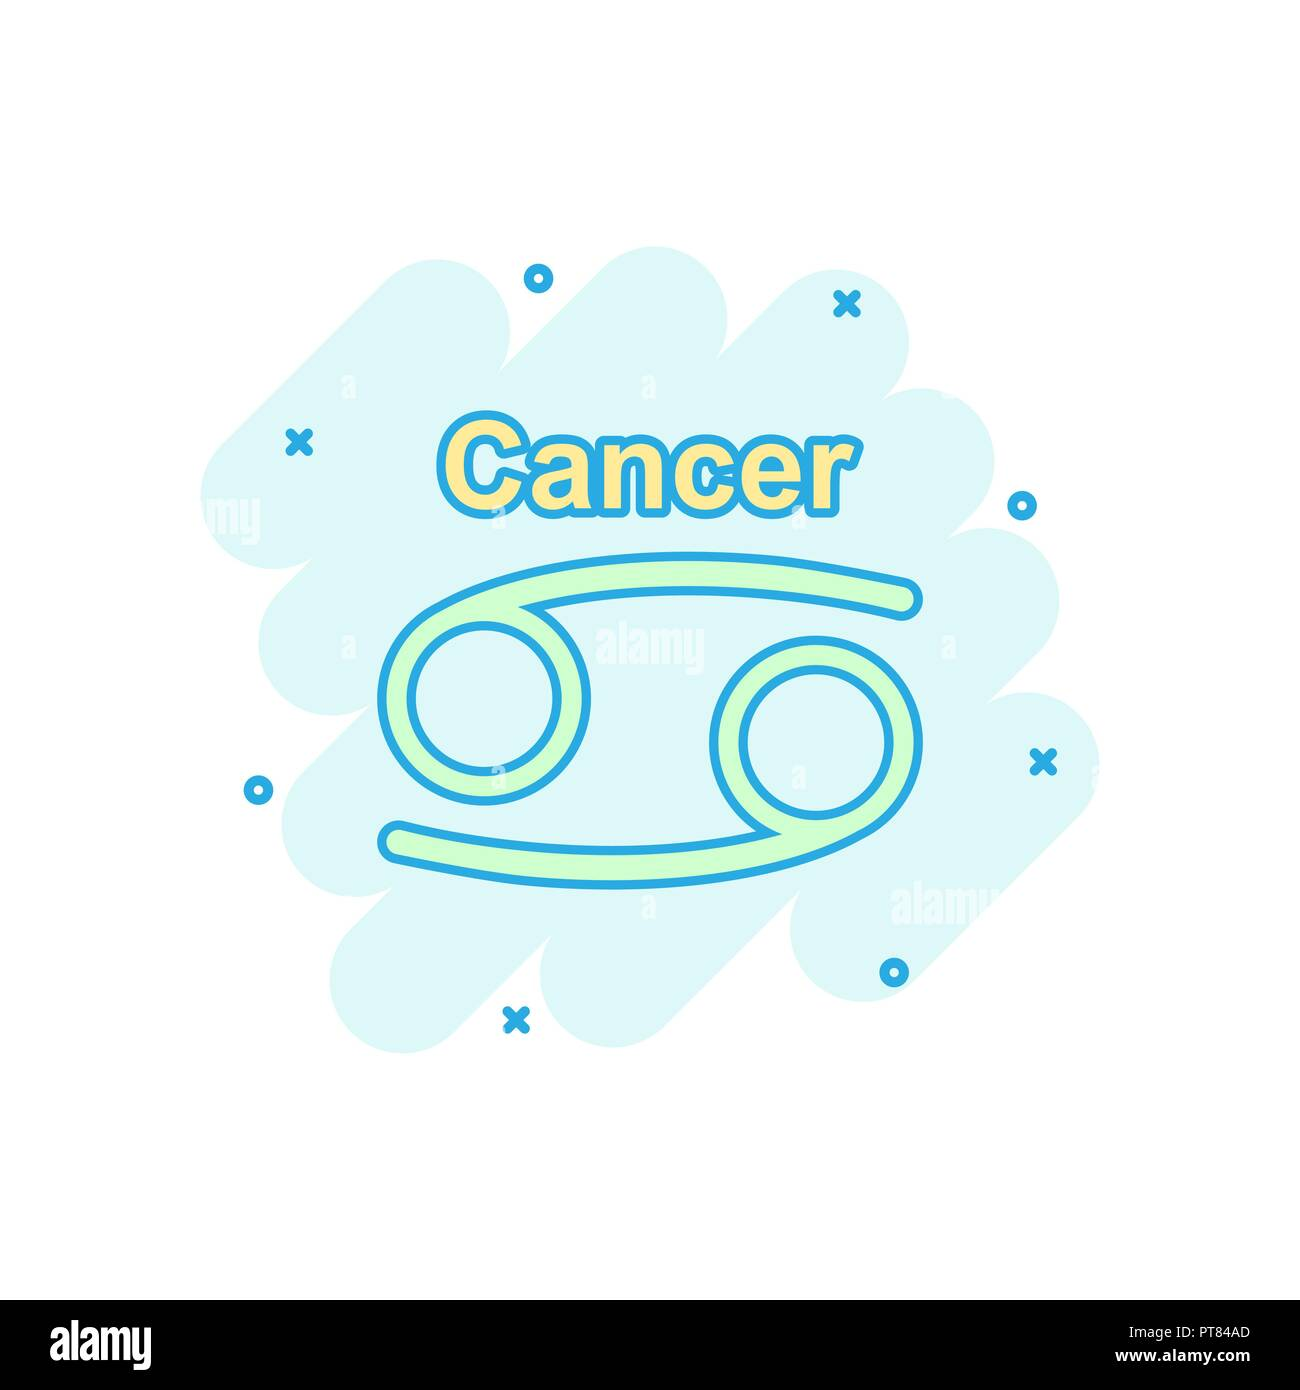 Calendario Astrologico Animato.Cancer Constellation Cartoon Illustration Immagini Cancer